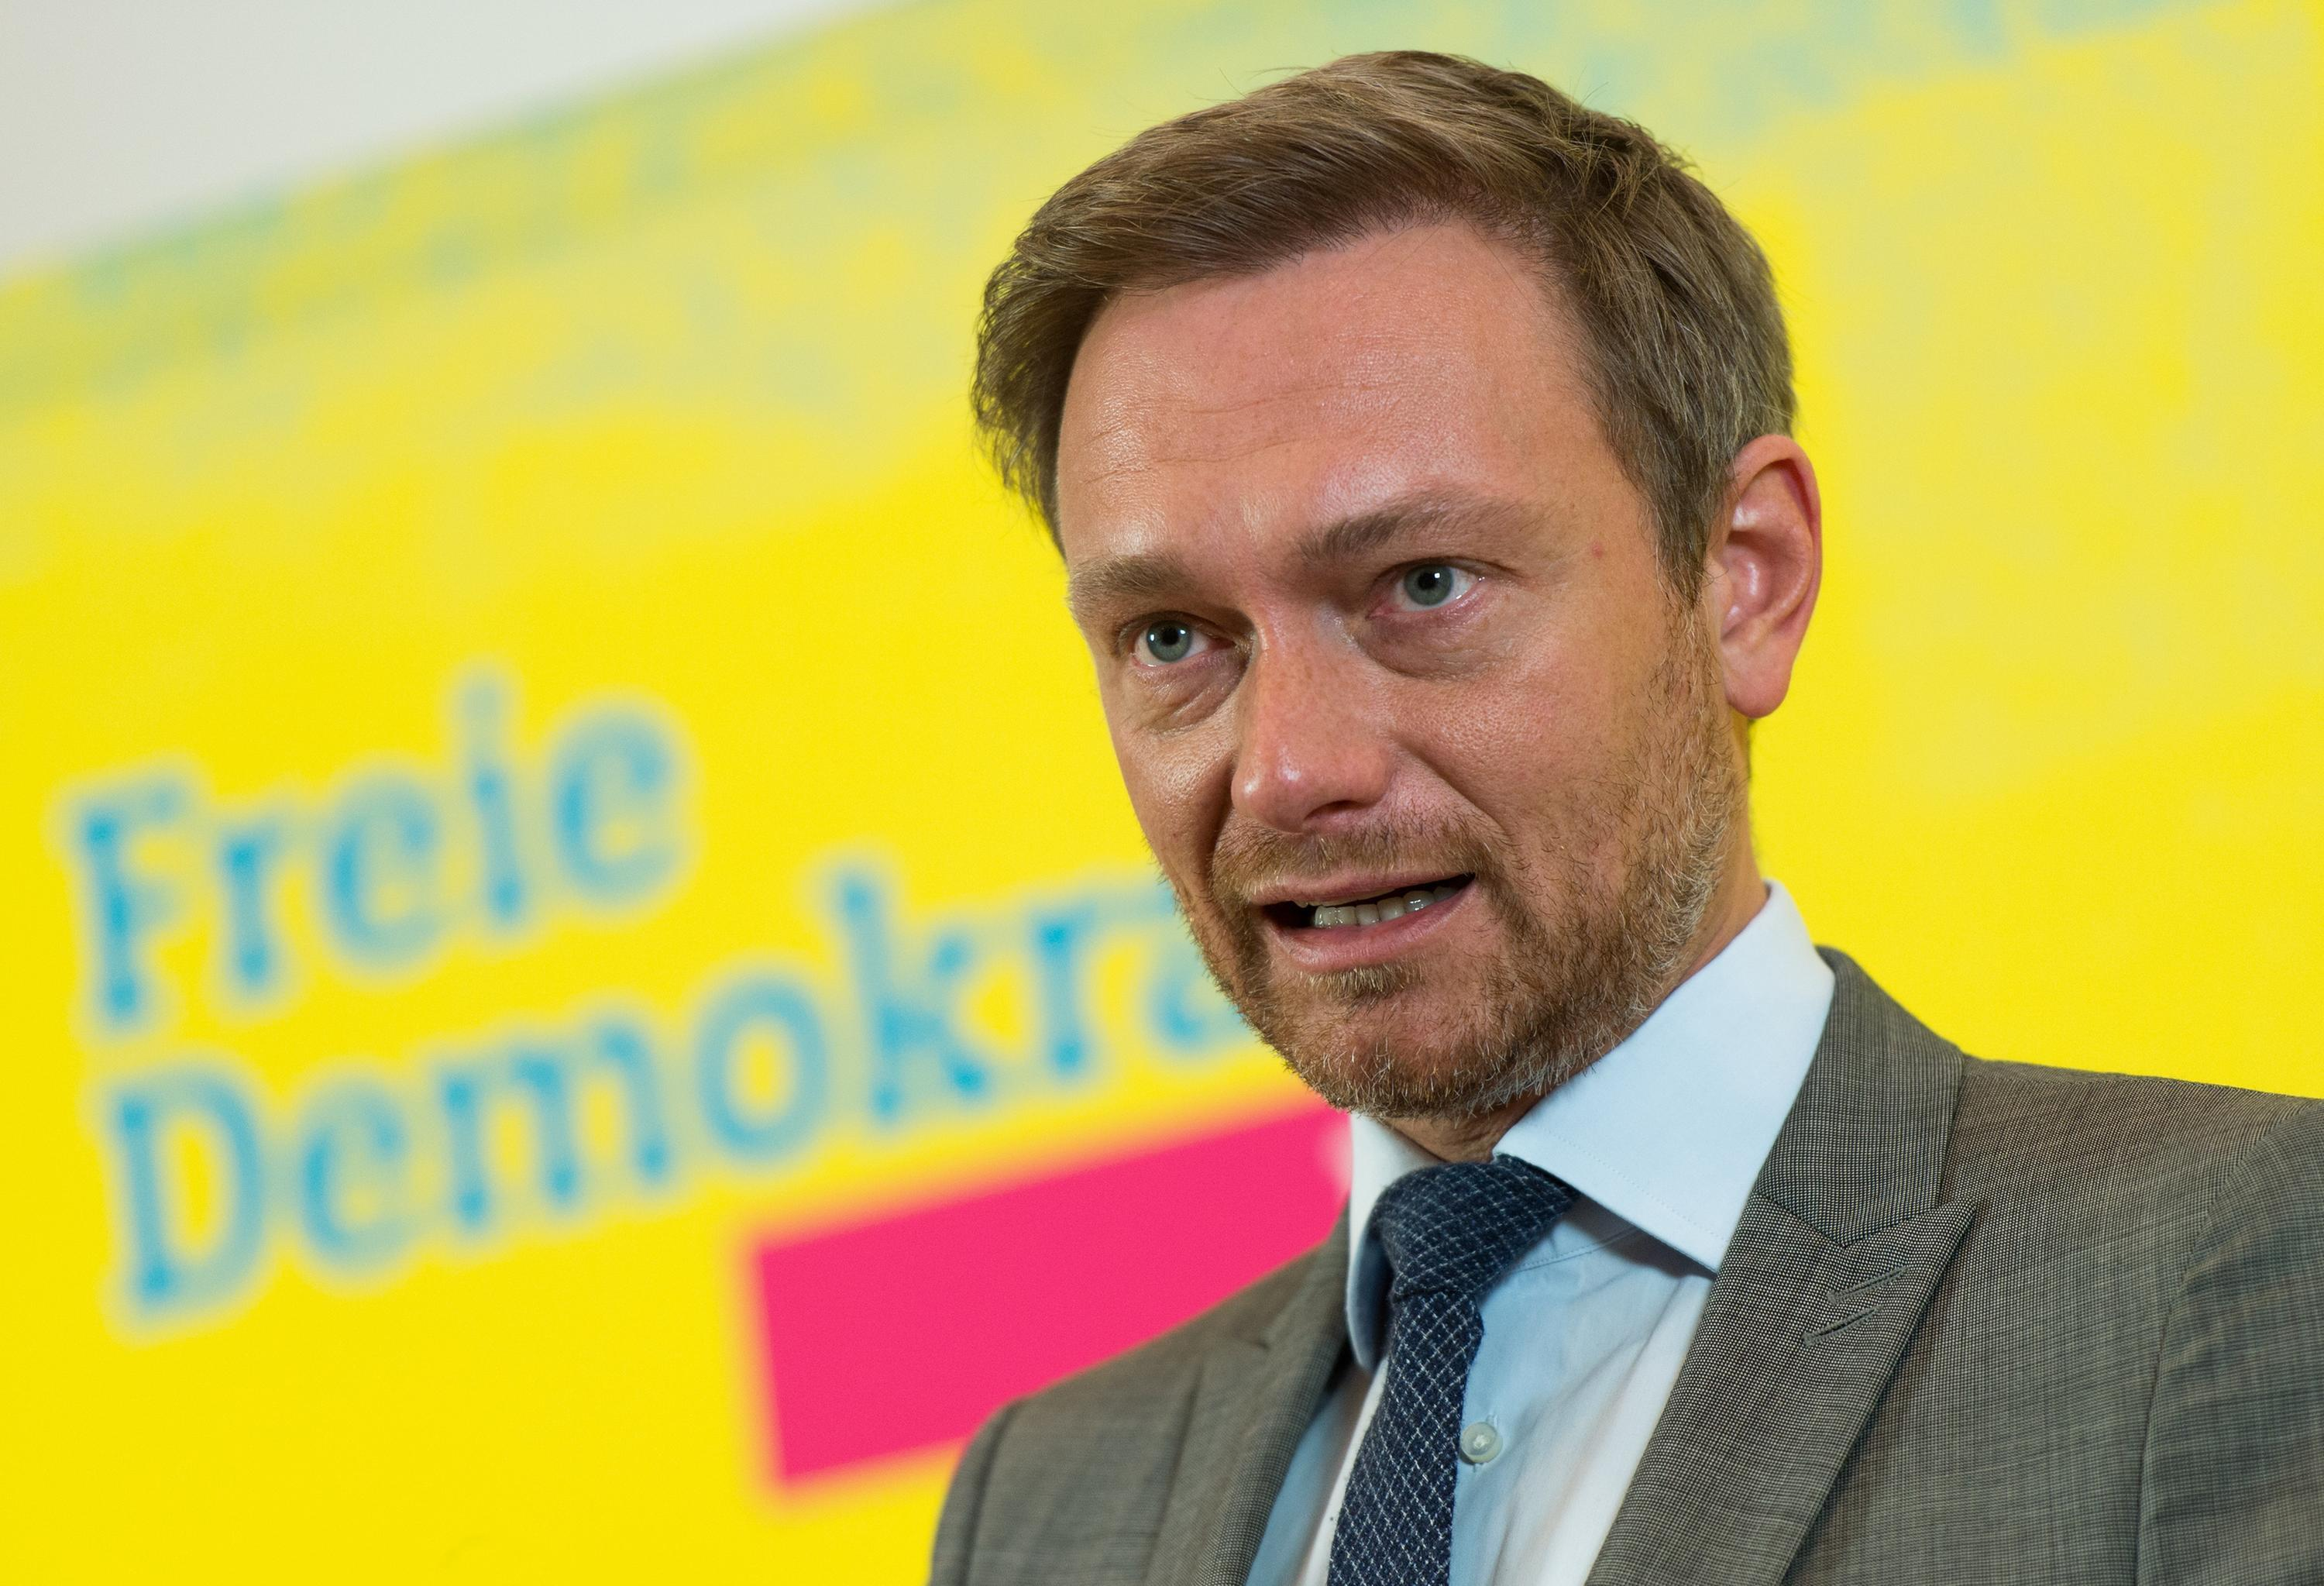 christian-lindner-fdp